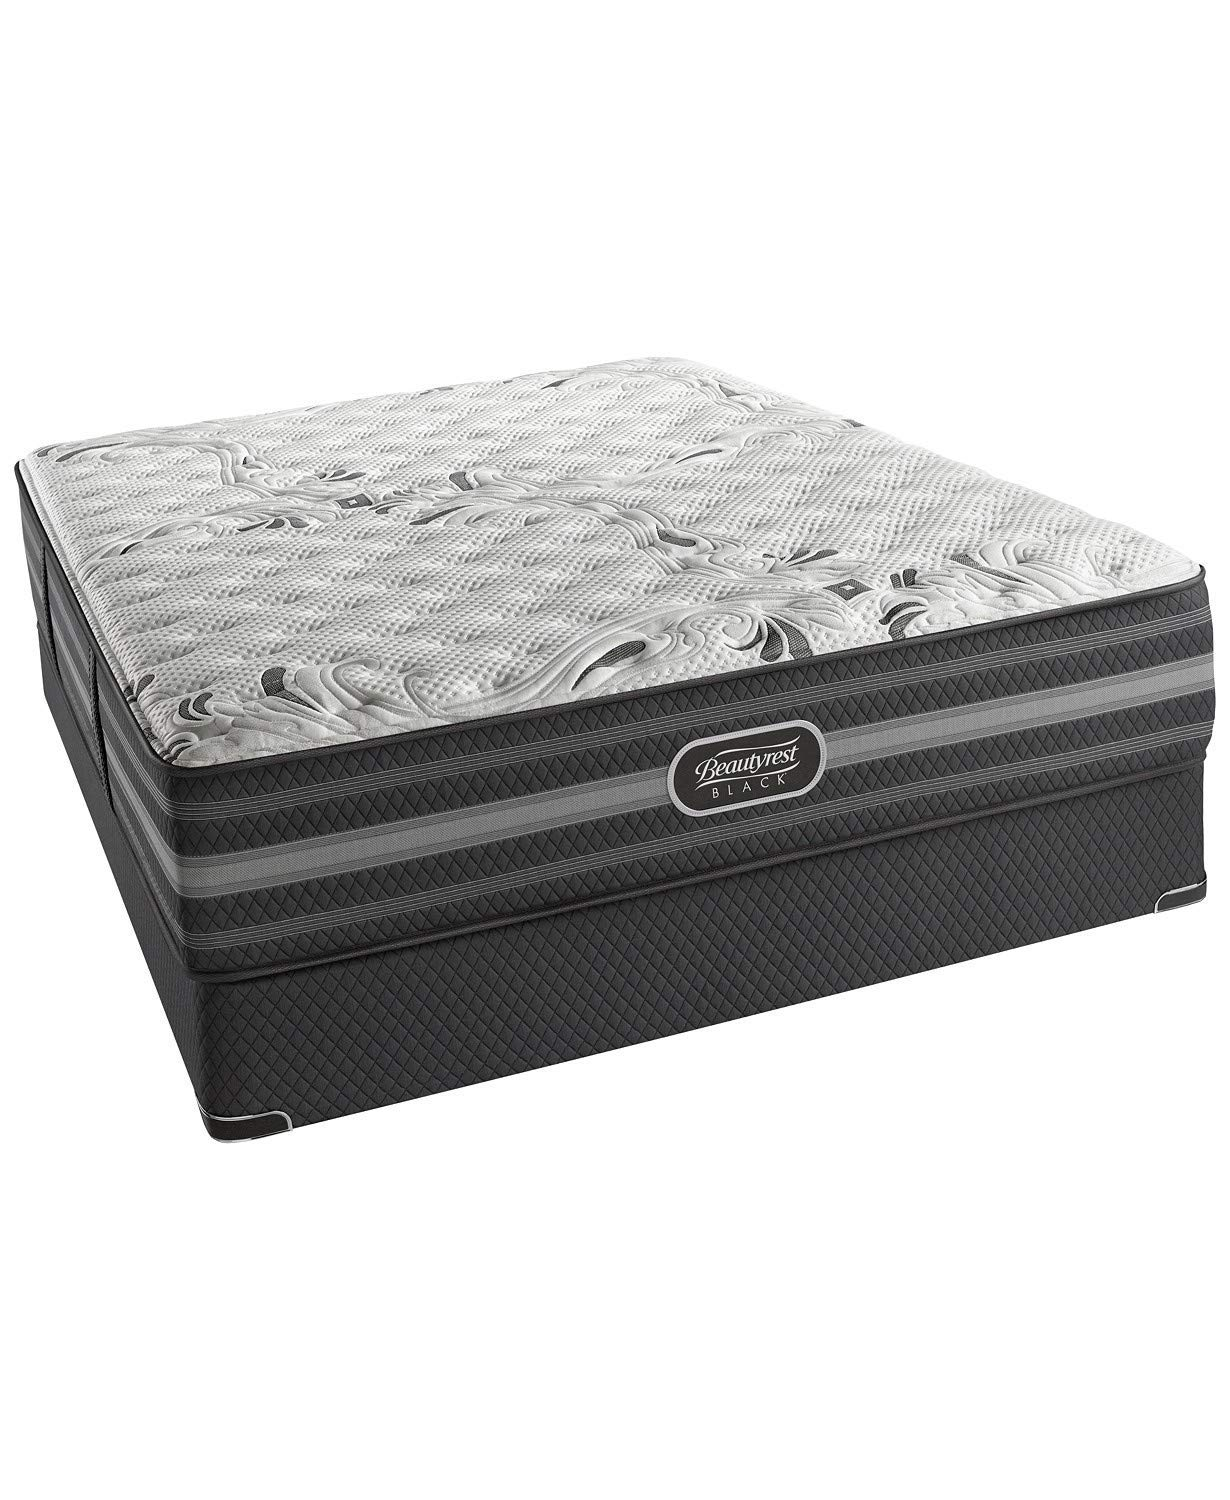 Simmons Beautyrest Black Giada Extra Firm King Mattress Mattress with Rize Clarity II Adjustable Base by Mattress